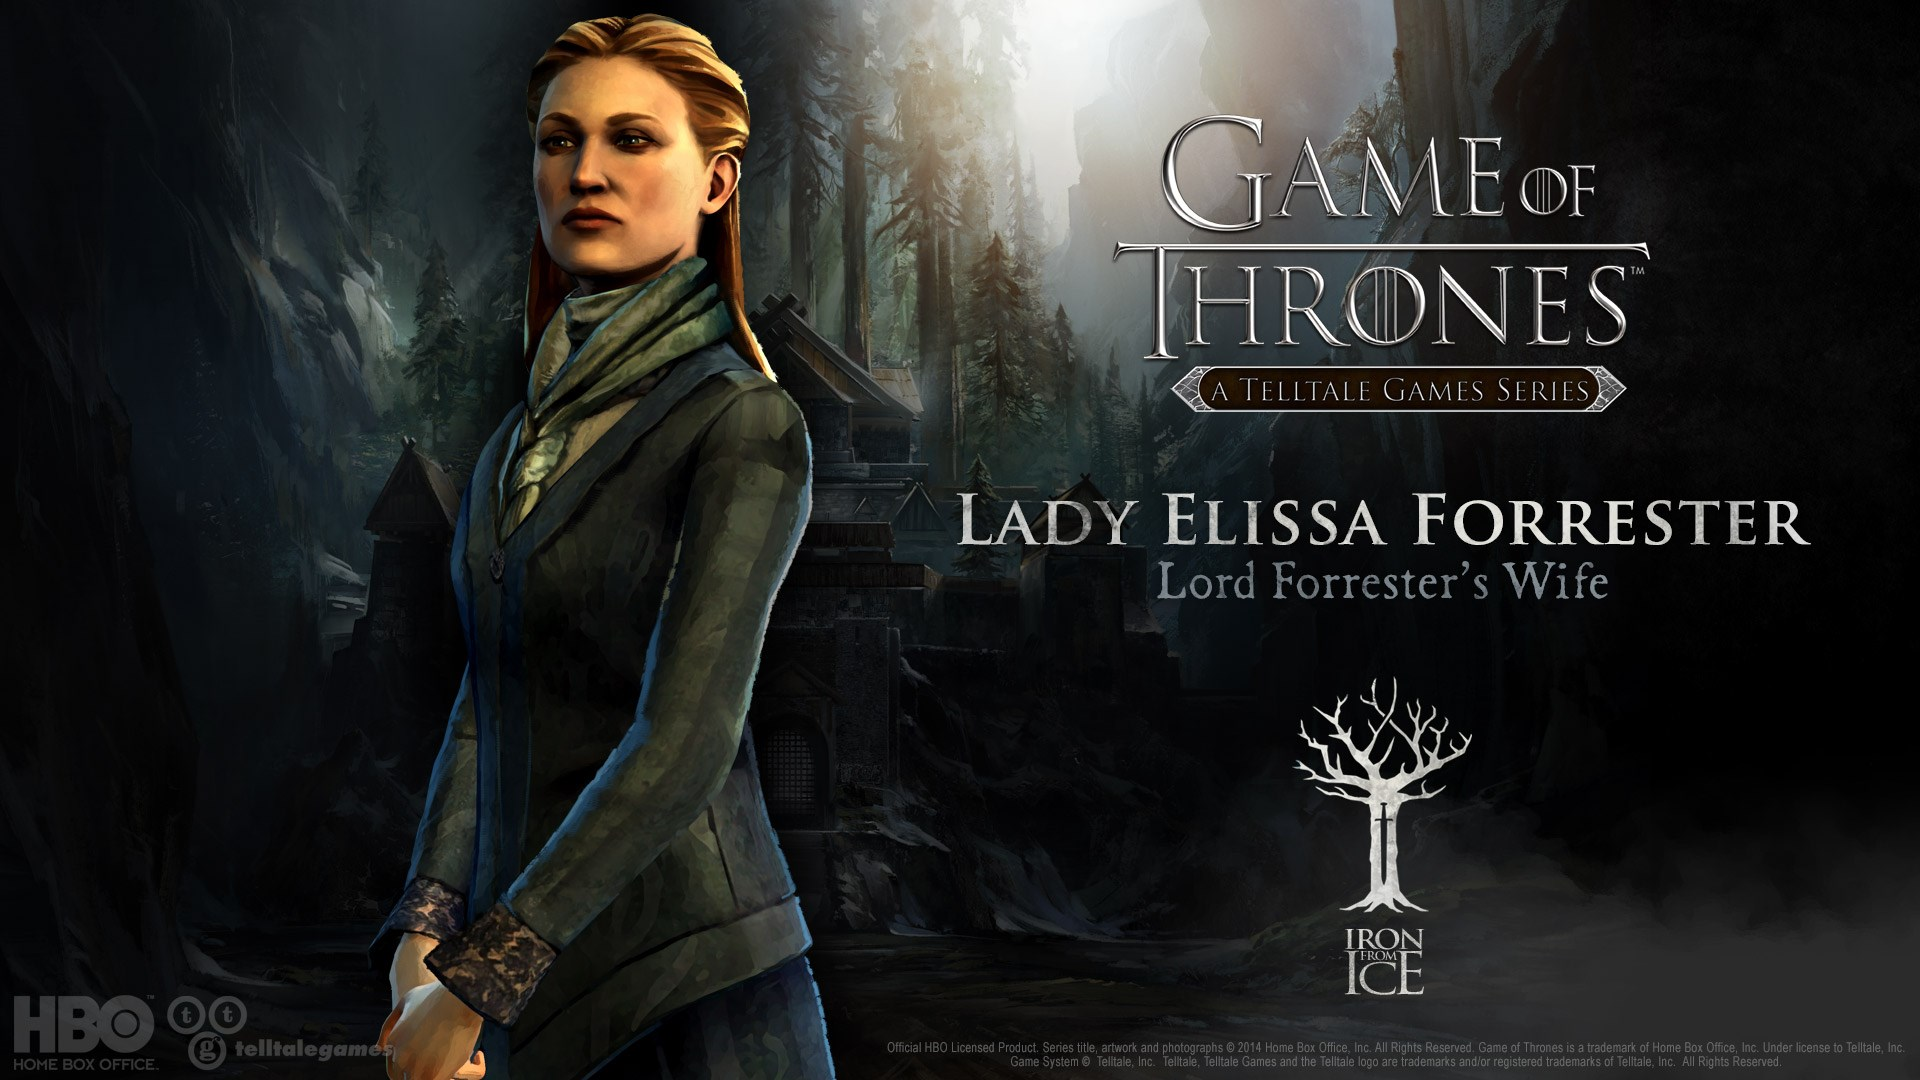 free-high-resolution-game-of-thrones-a-telltale-games-series-Angelica-Holiday-1920x1080-wallpaper-wp3805573